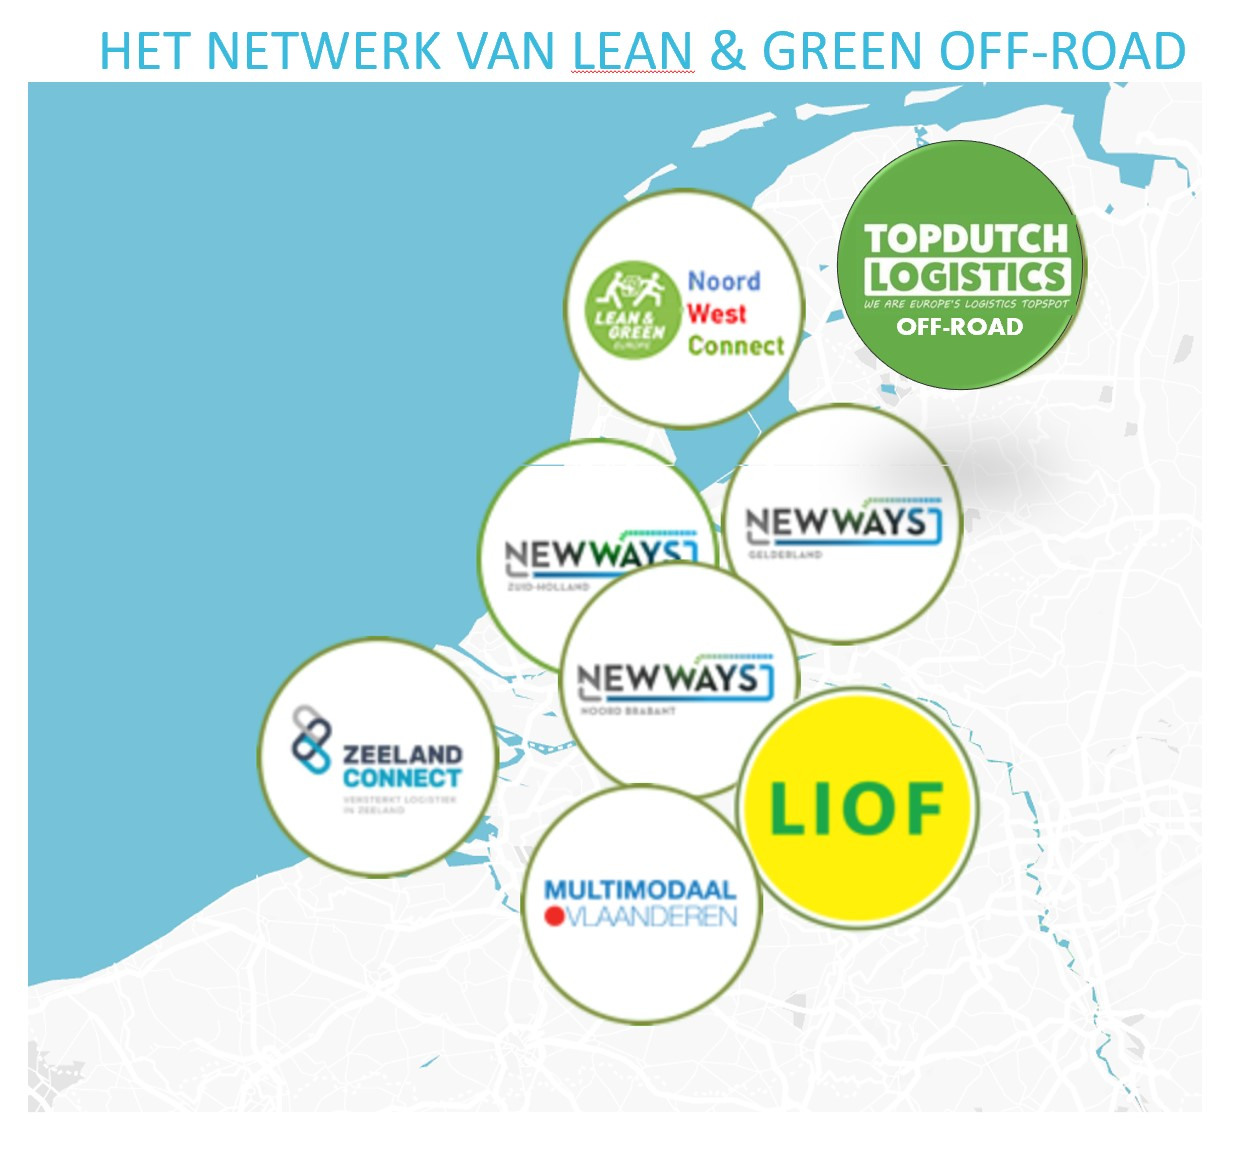 De regionale aanpak van Lean & Green Off-Road